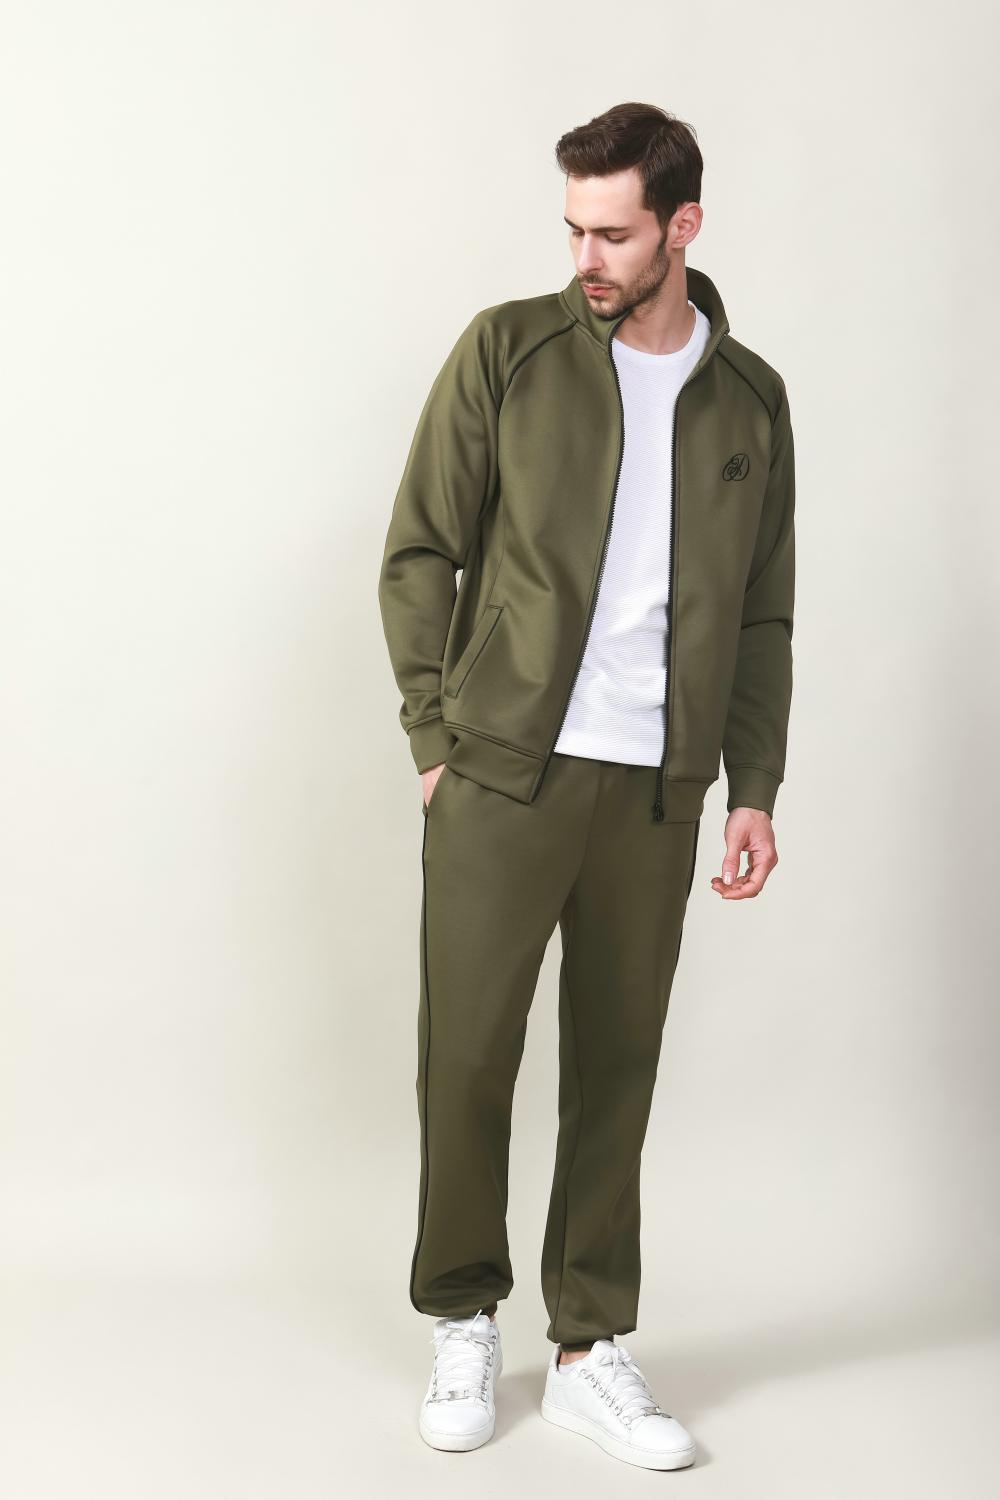 Men's interlock jogger be a tapper fit